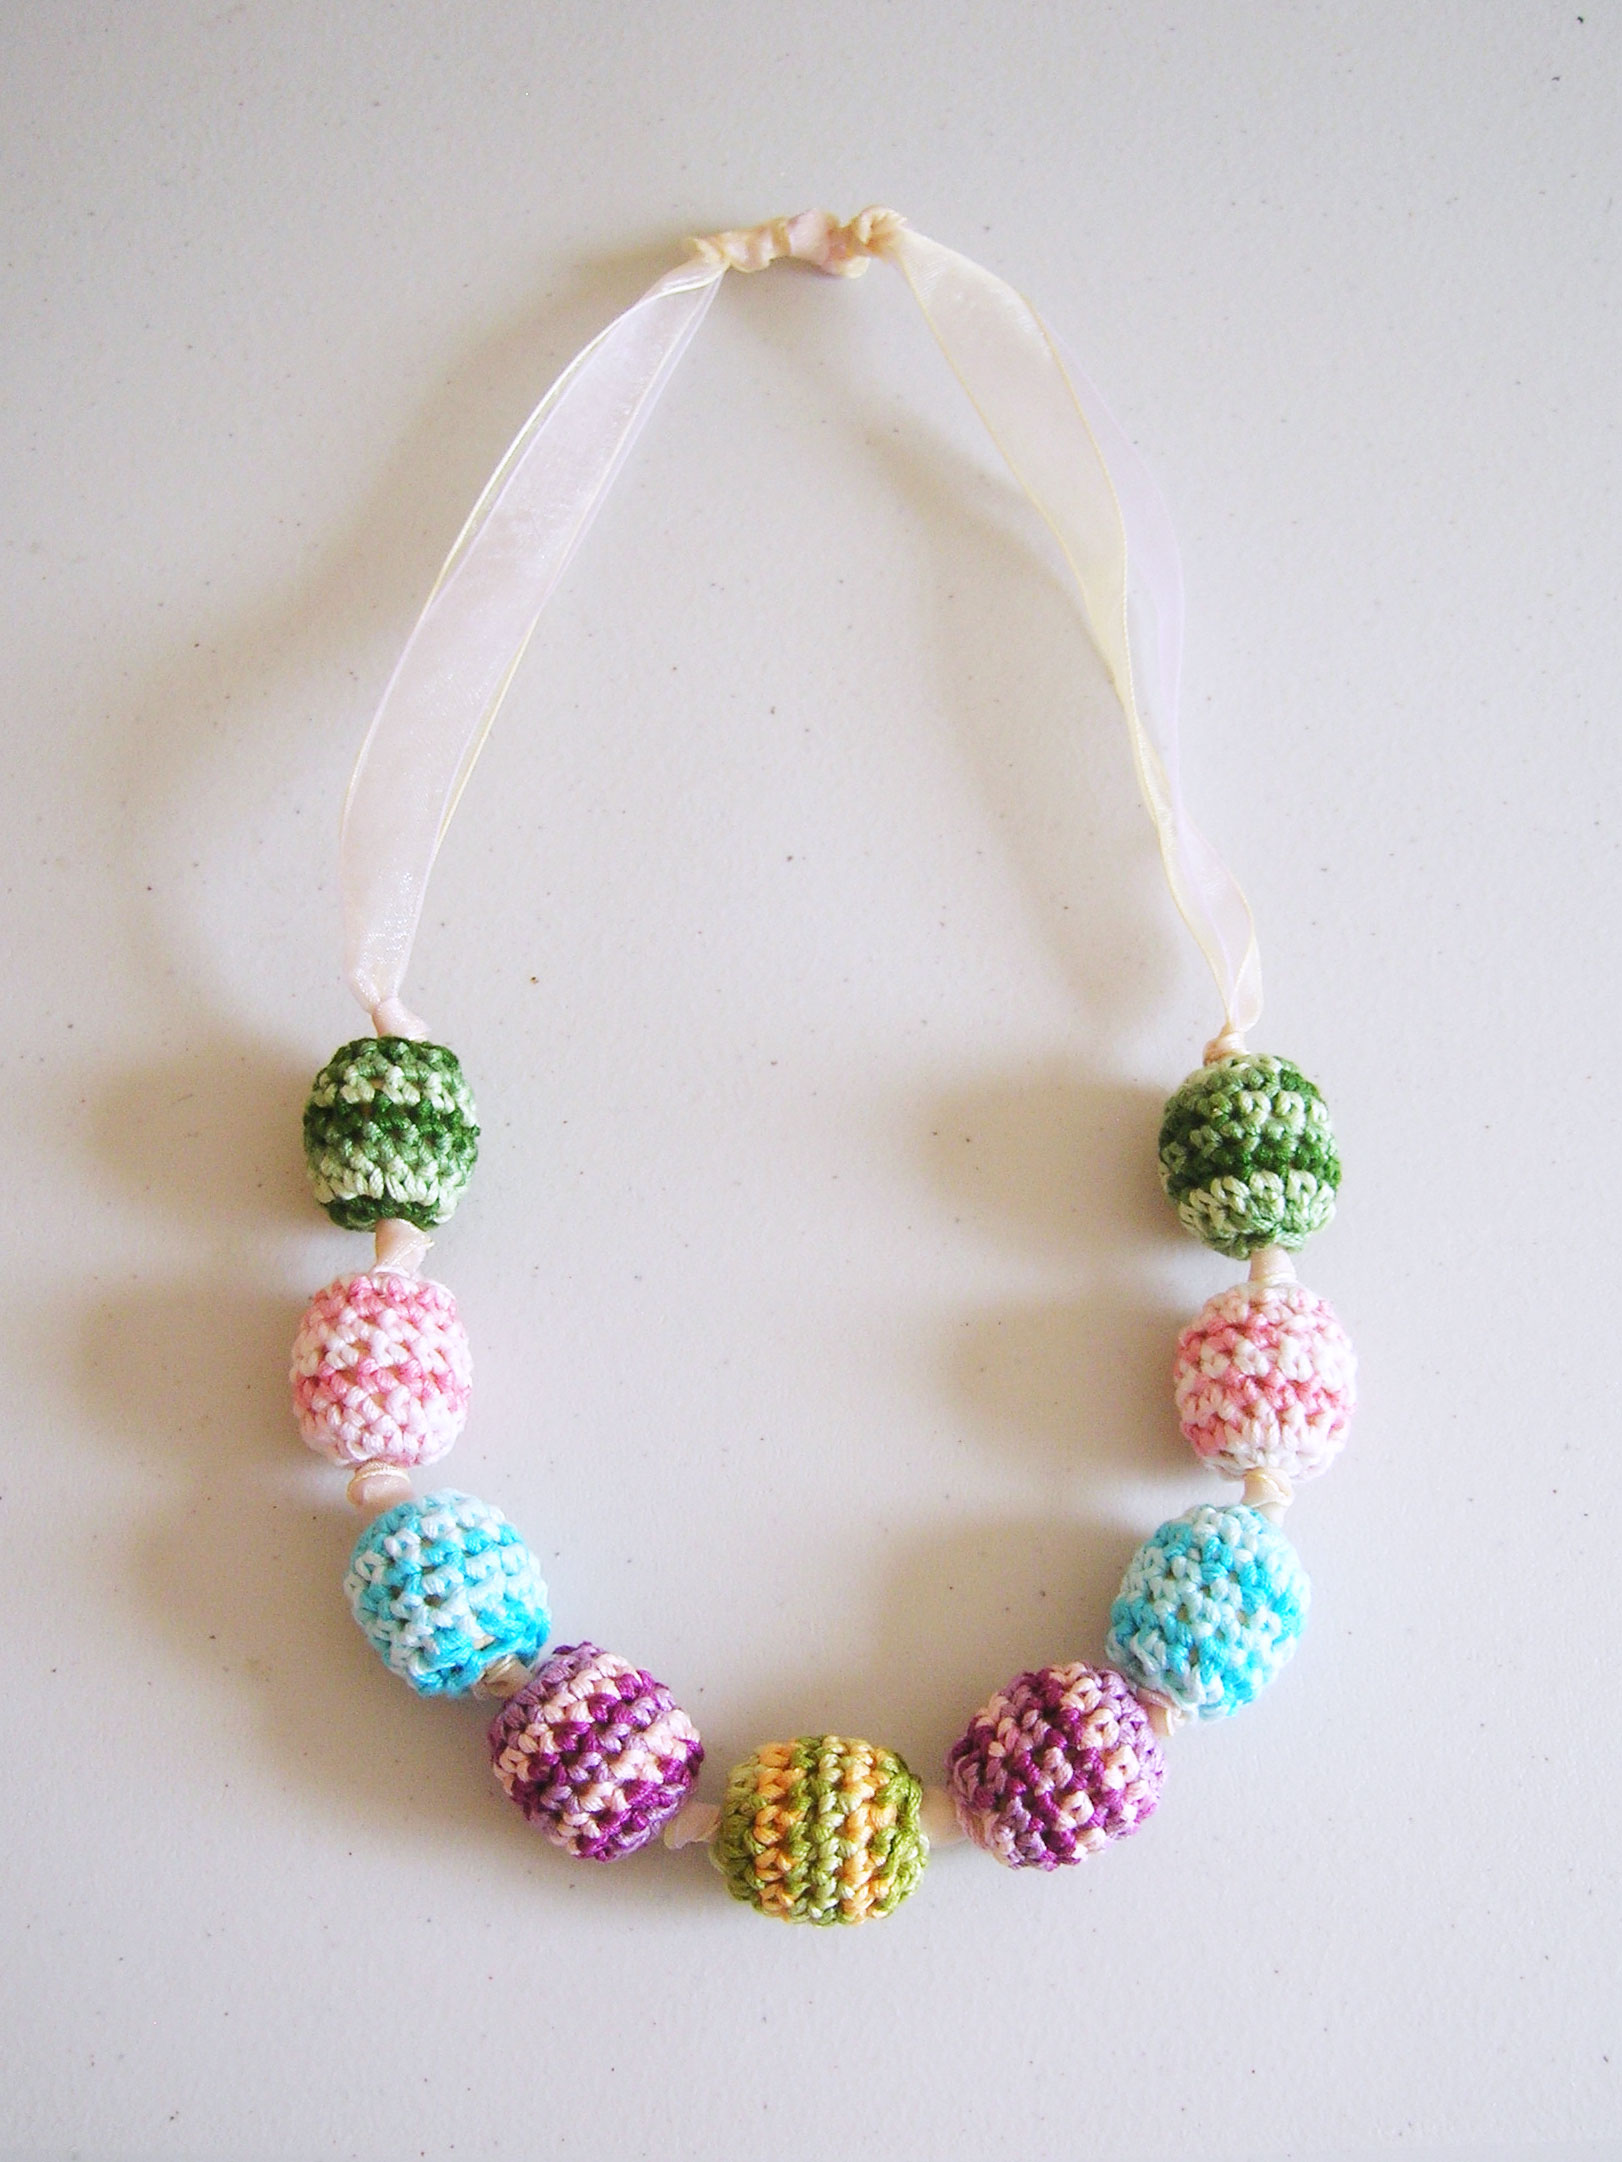 crochet beads necklace collar de cuentas tejidas